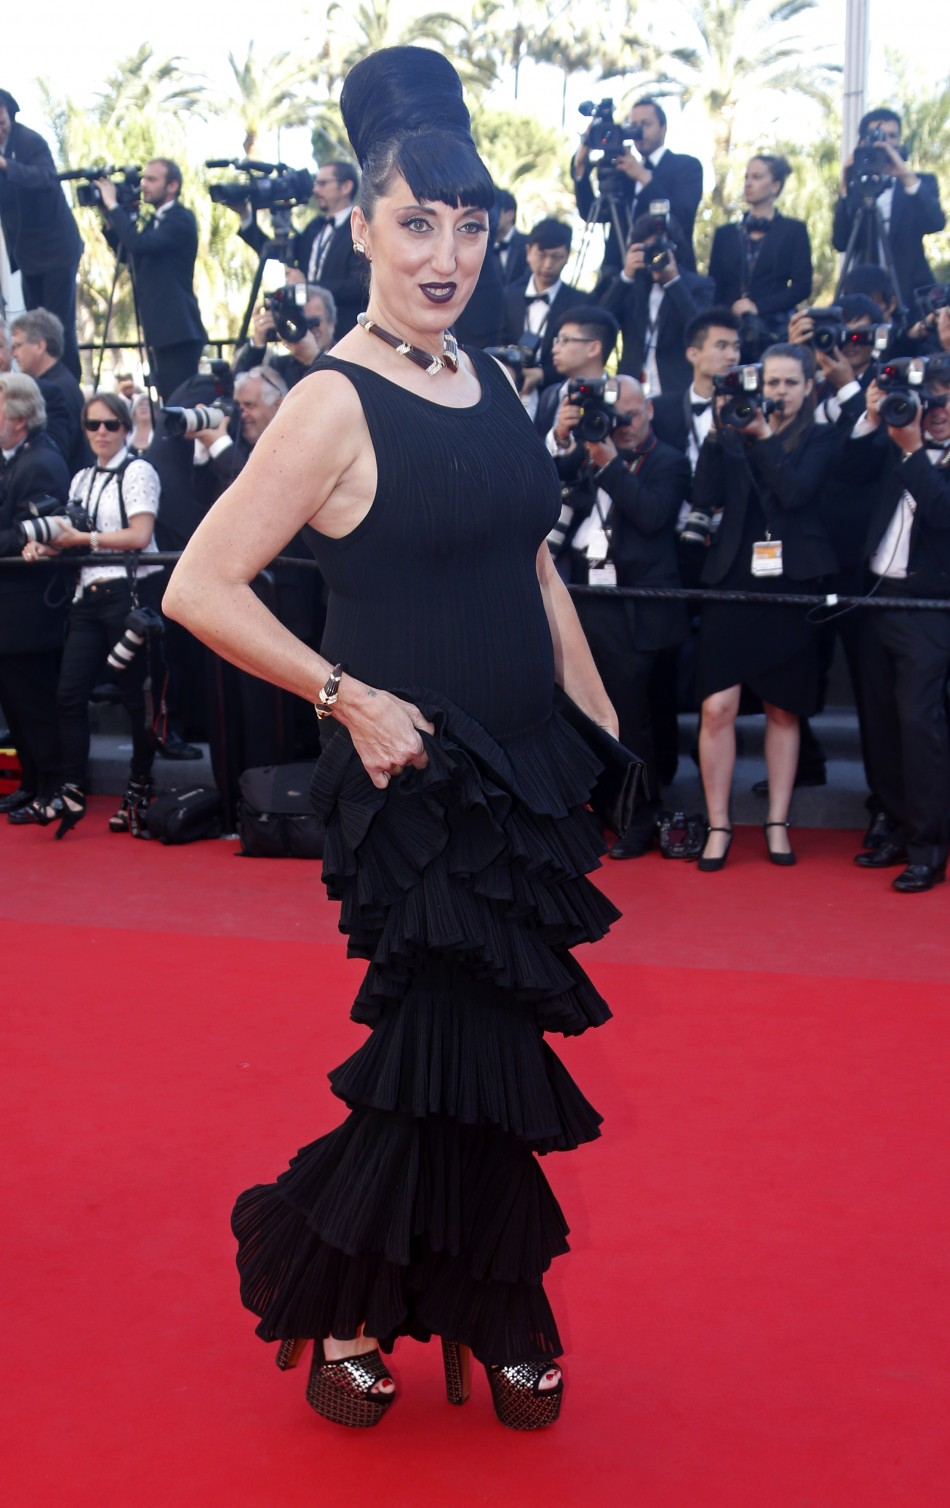 Actress Rossy de Palma poses on the red carpet as she arrives at the closing ceremony of the 66th Cannes Film Festival in Cannes May 26, 2013.